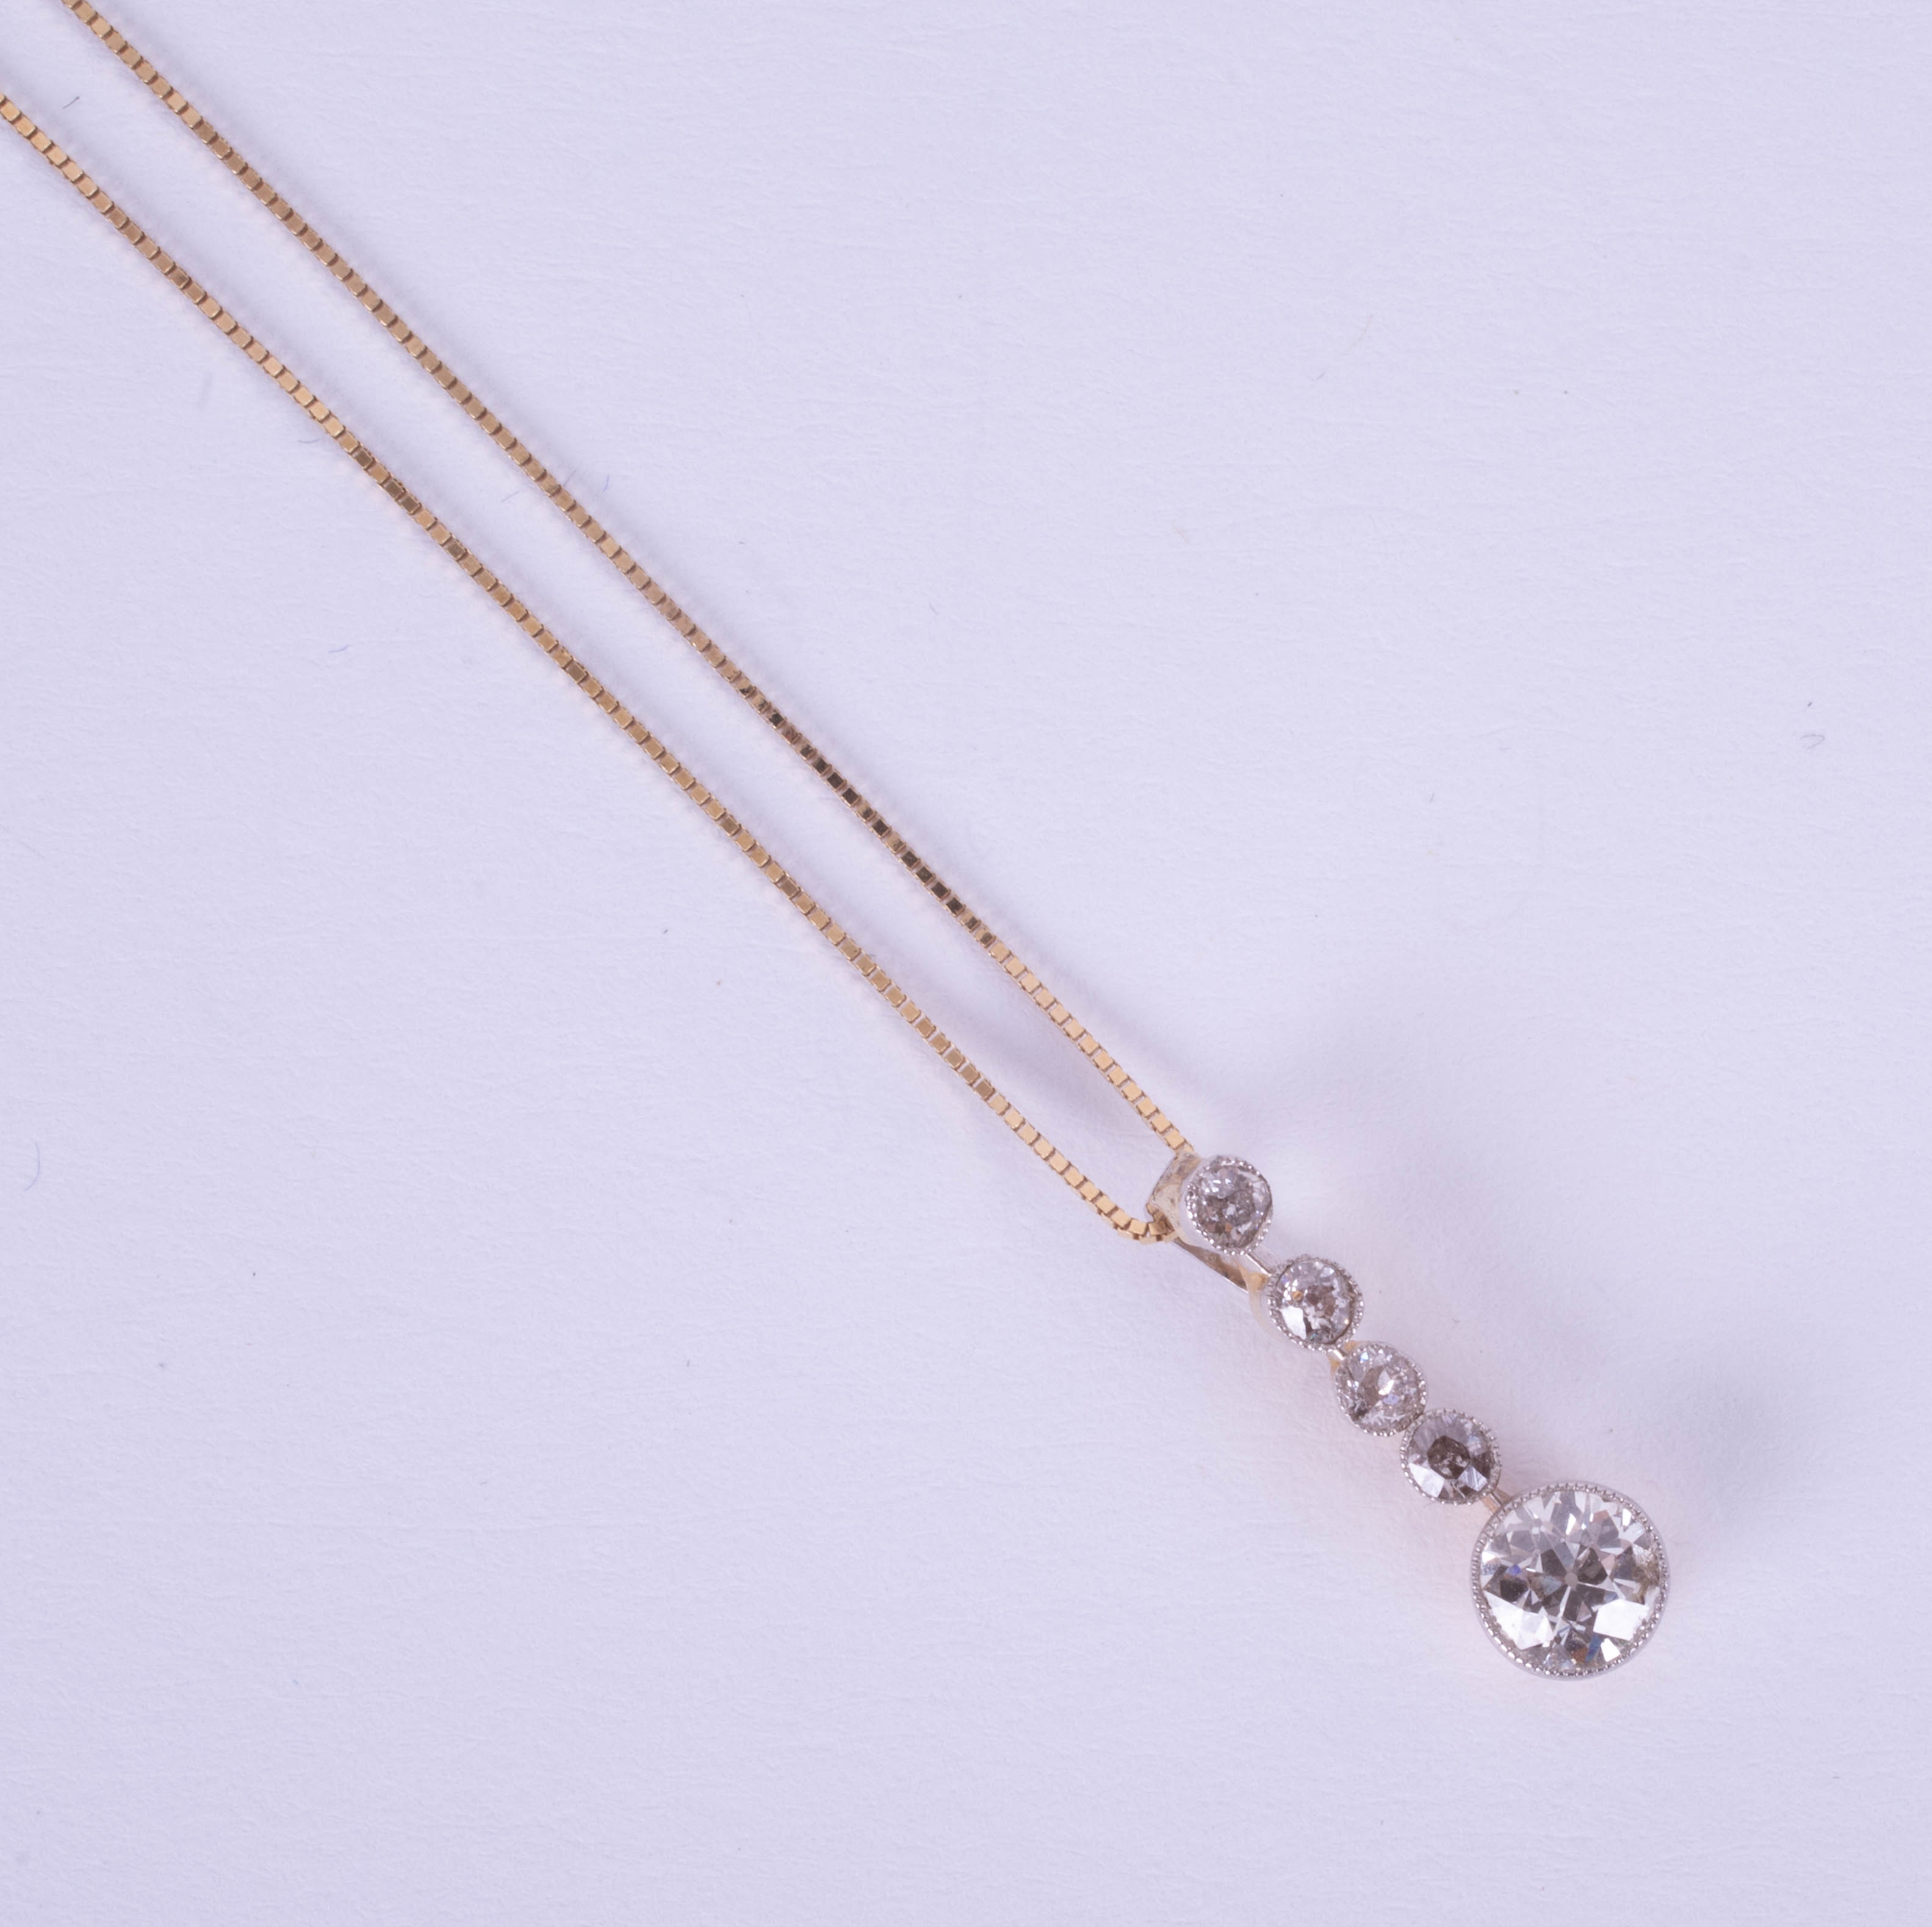 A five stone diamond pendant necklace, early 20th century, on fine chain.